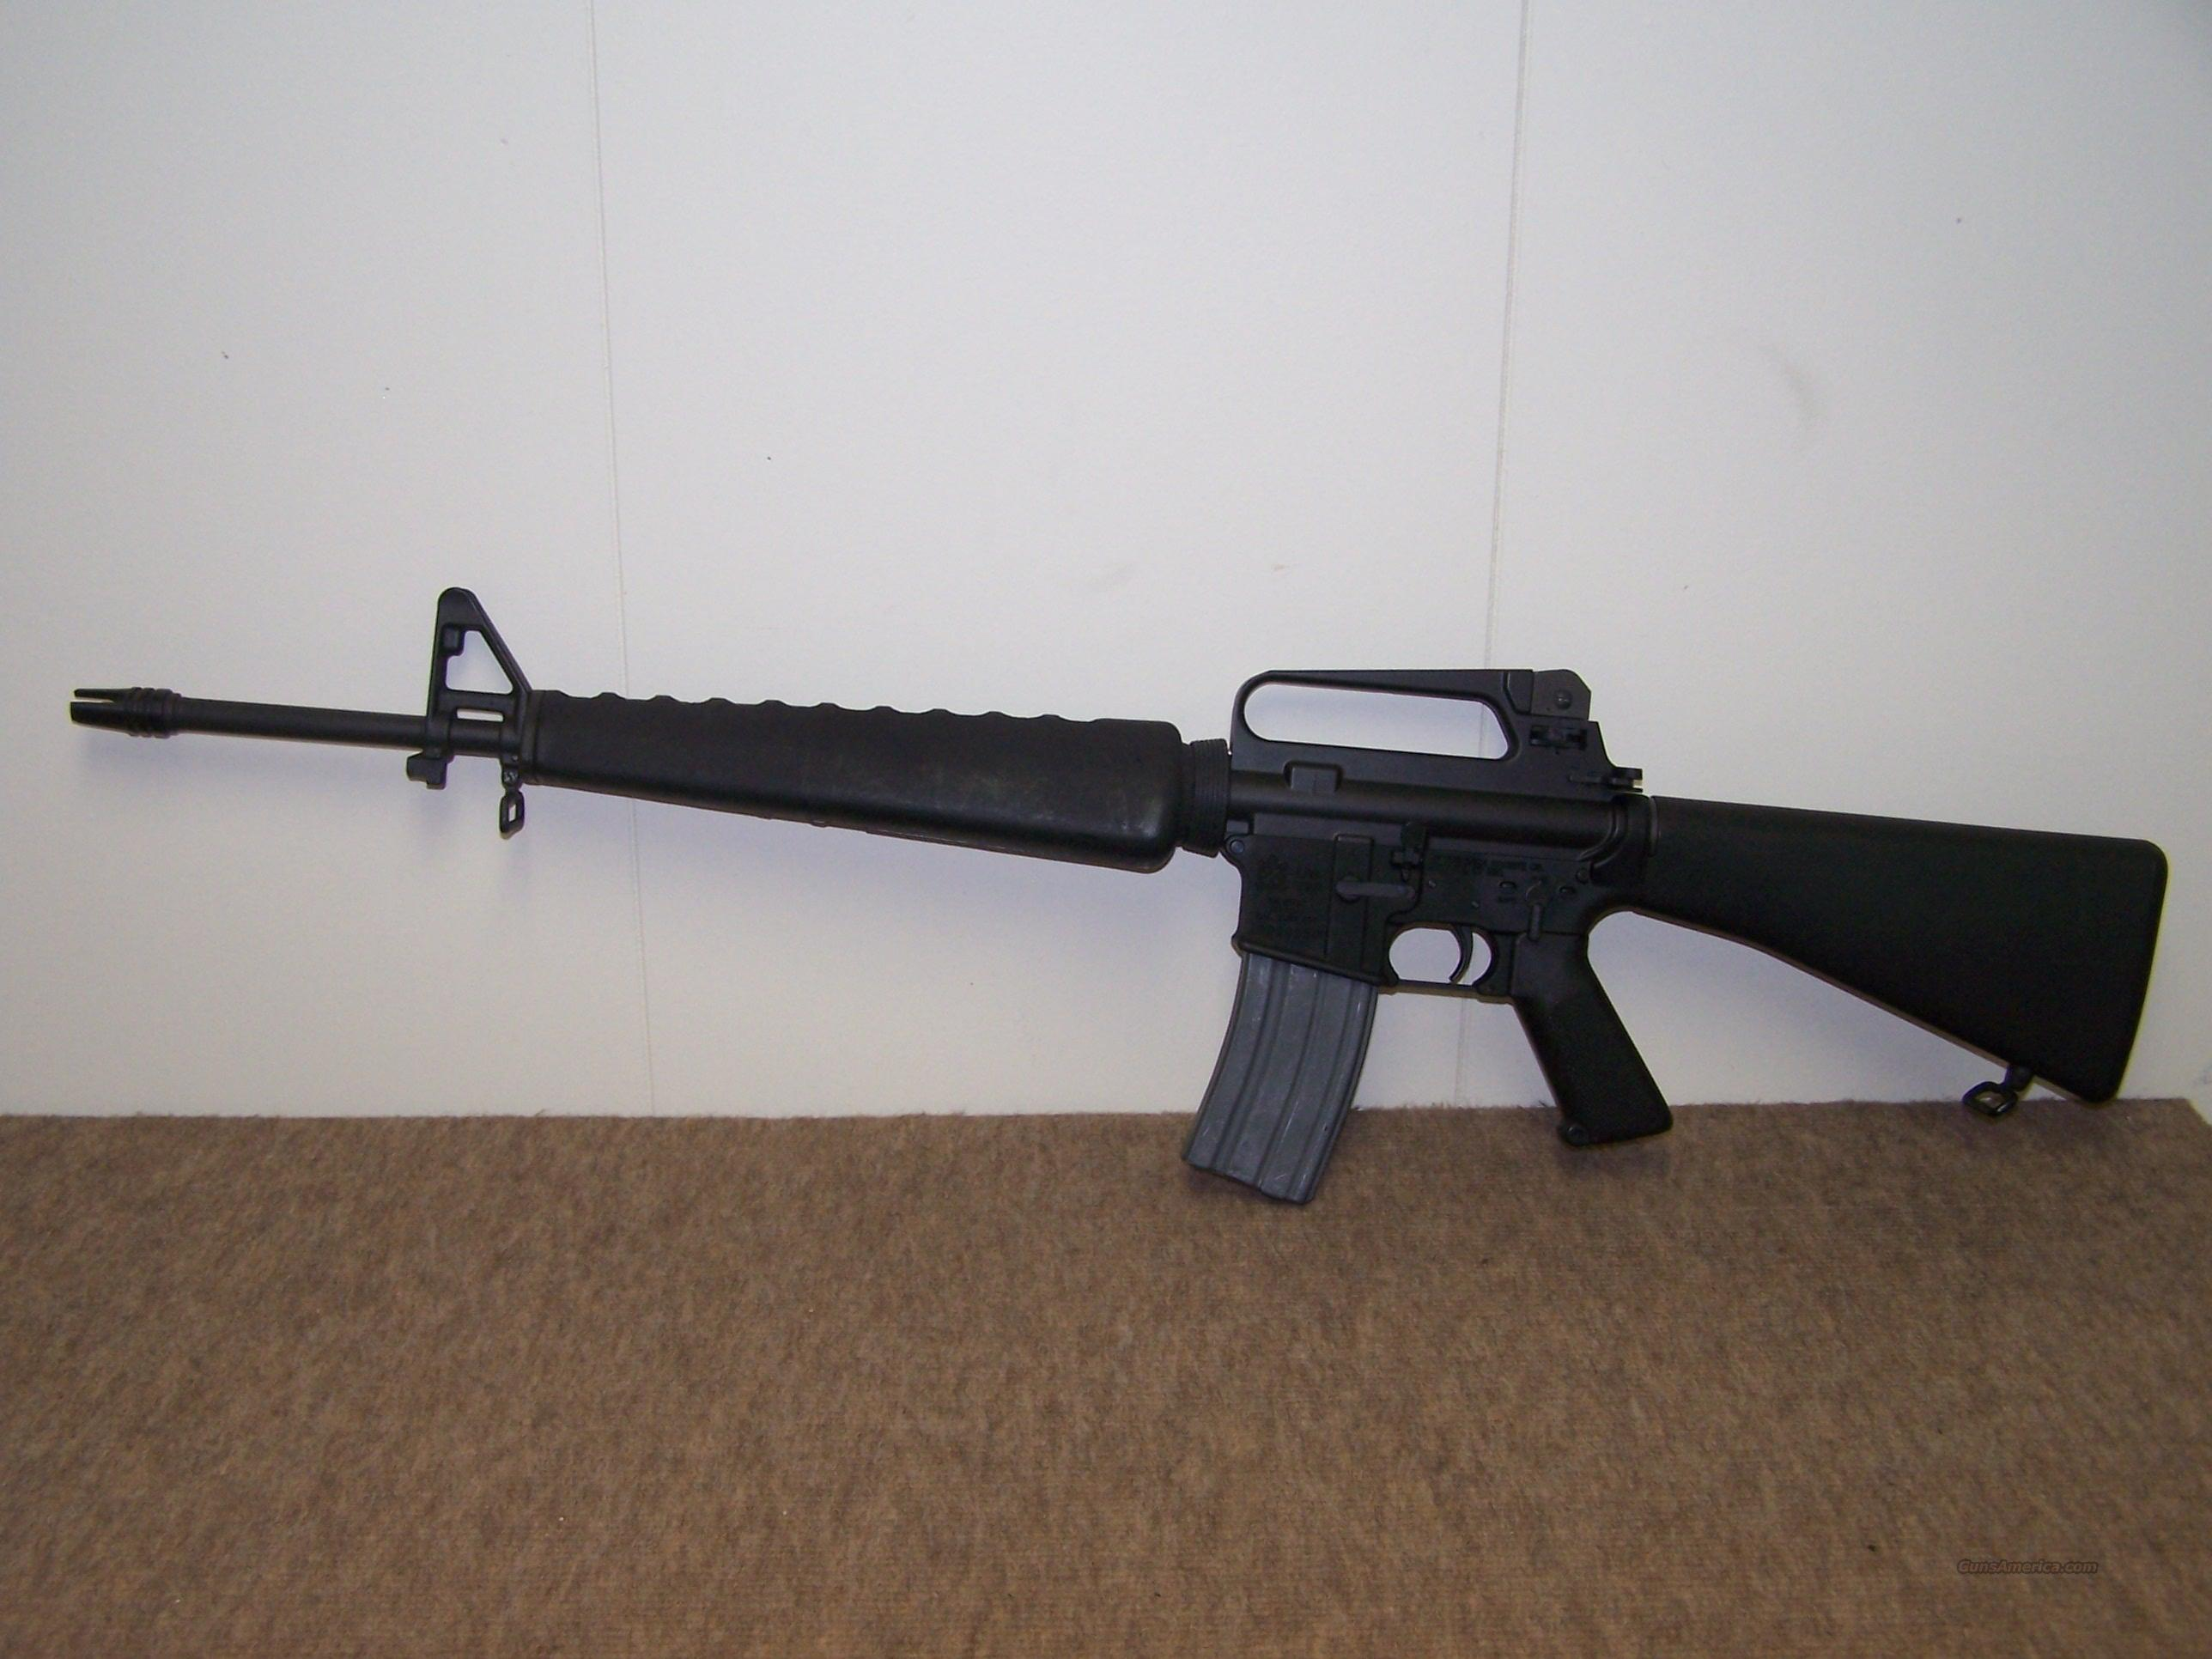 RETRO AR-15   Guns > Rifles > AR-15 Rifles - Small Manufacturers > Complete Rifle